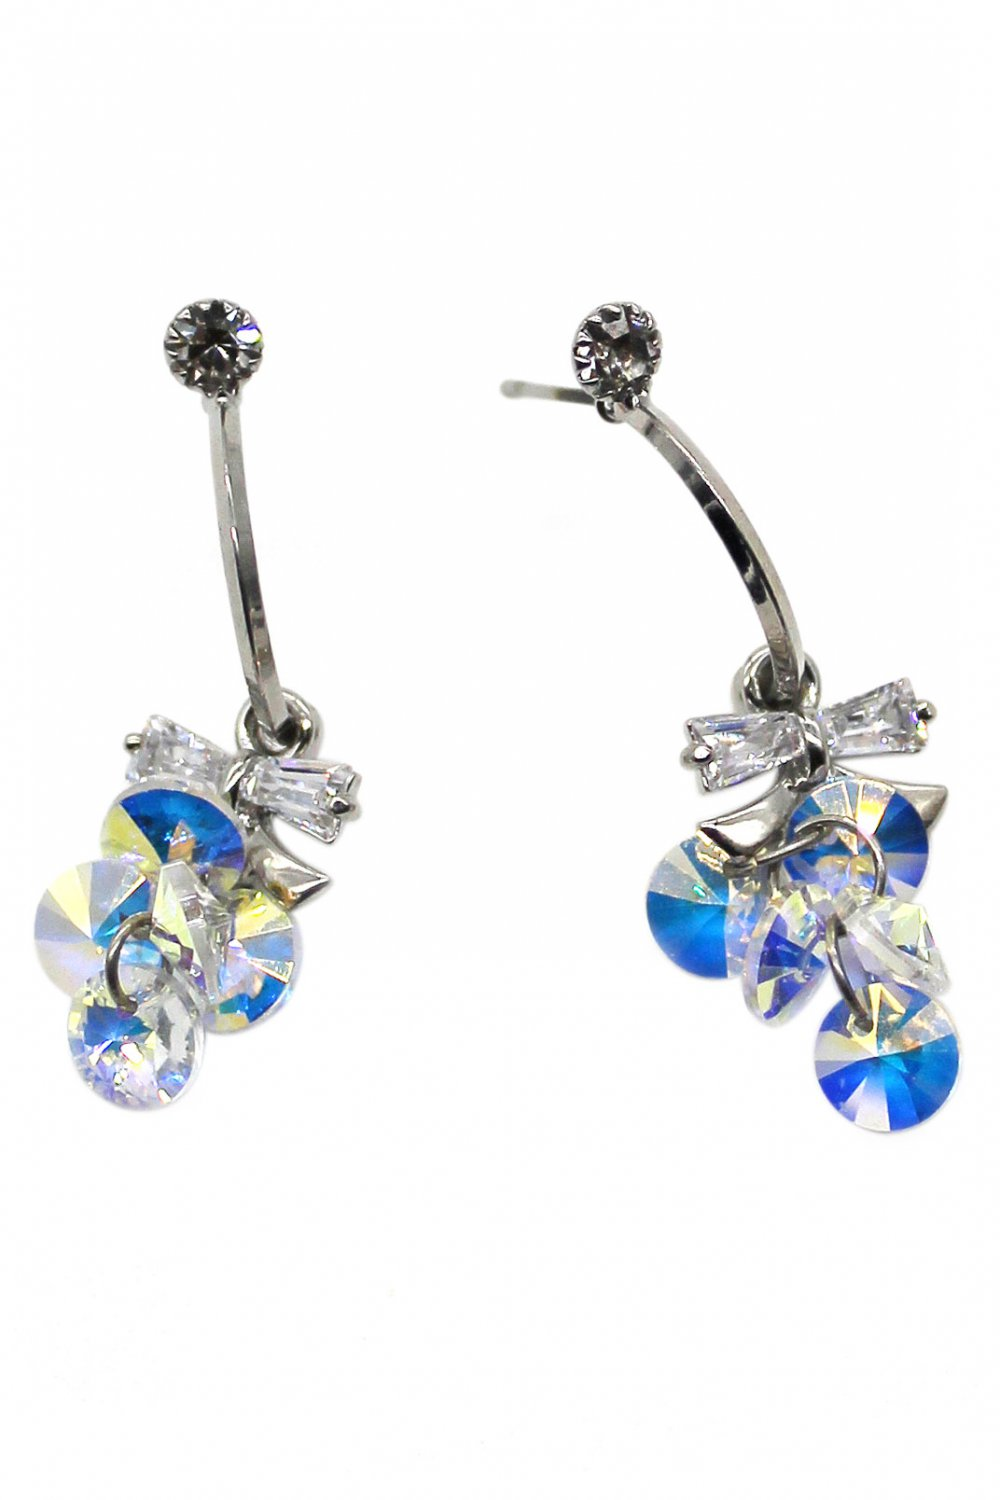 Sweety sparkling swarovski crystal silver earrings